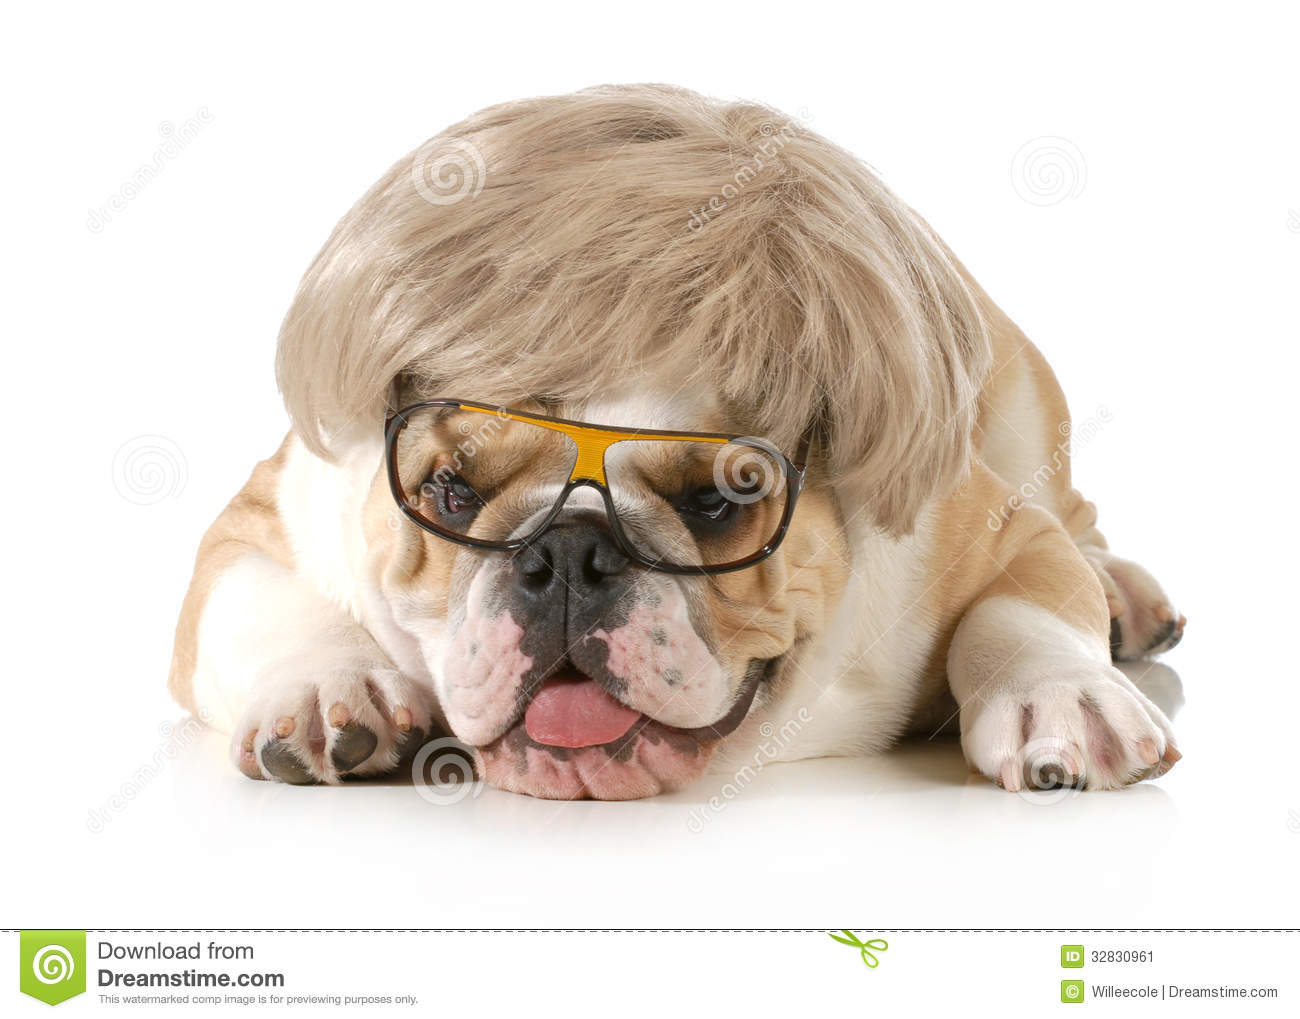 Cute Glasses Wallpaper Funny Dog Stock Image Image Of Canine Portrait Card